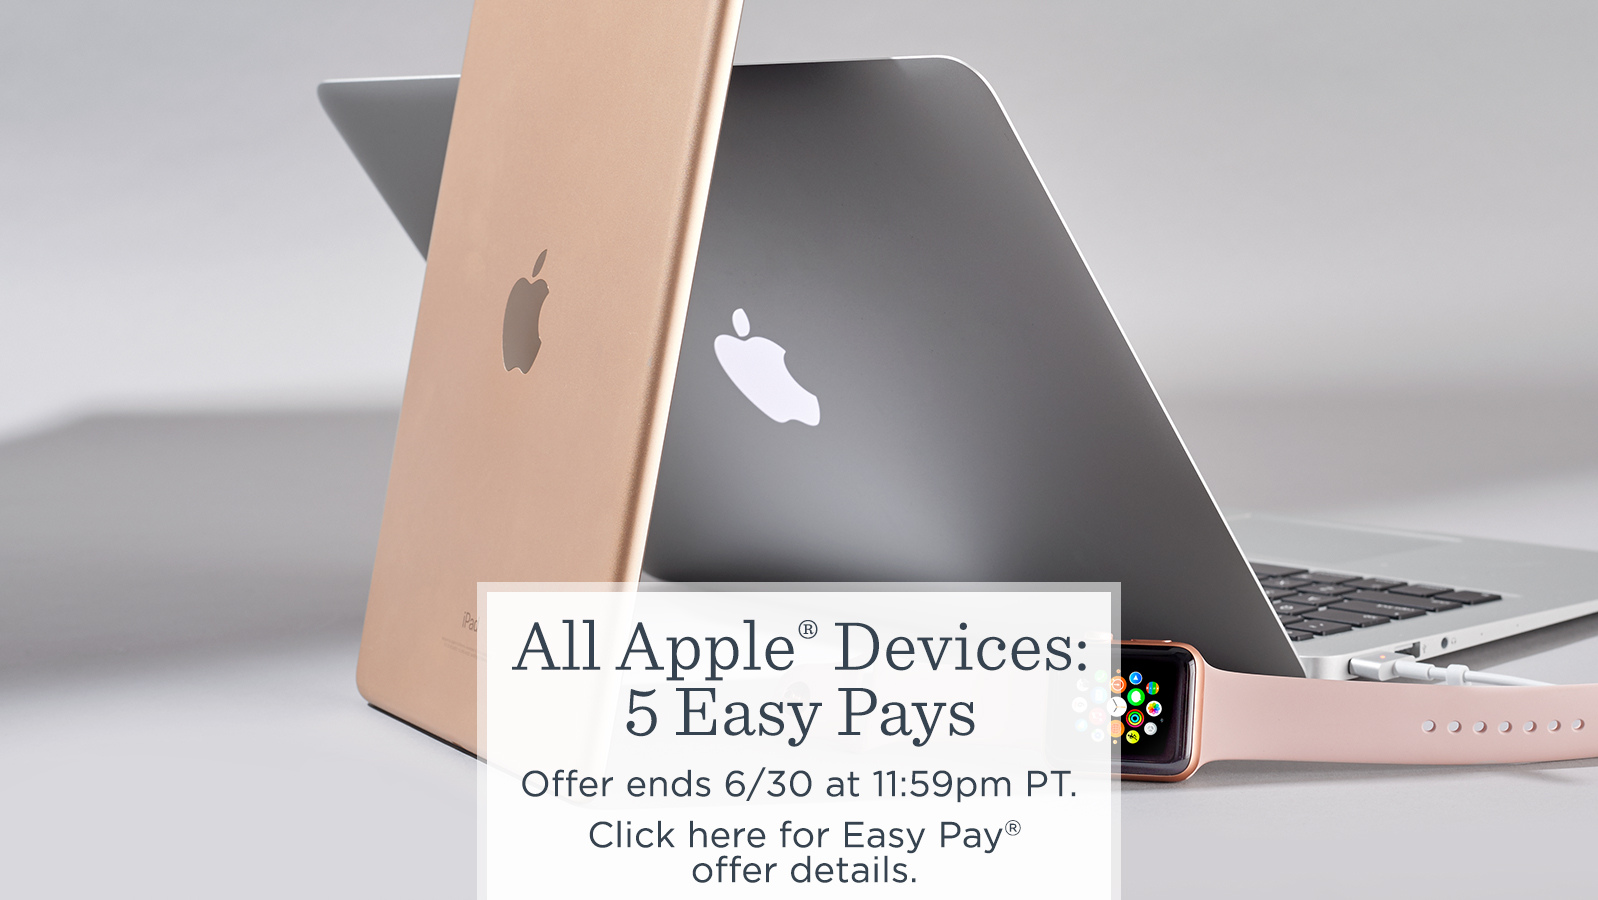 All Apple® Devices: 5 Easy Pays   Offer ends 6/30 at 11:59pm PT.  Click here for Easy Pay® offer details.